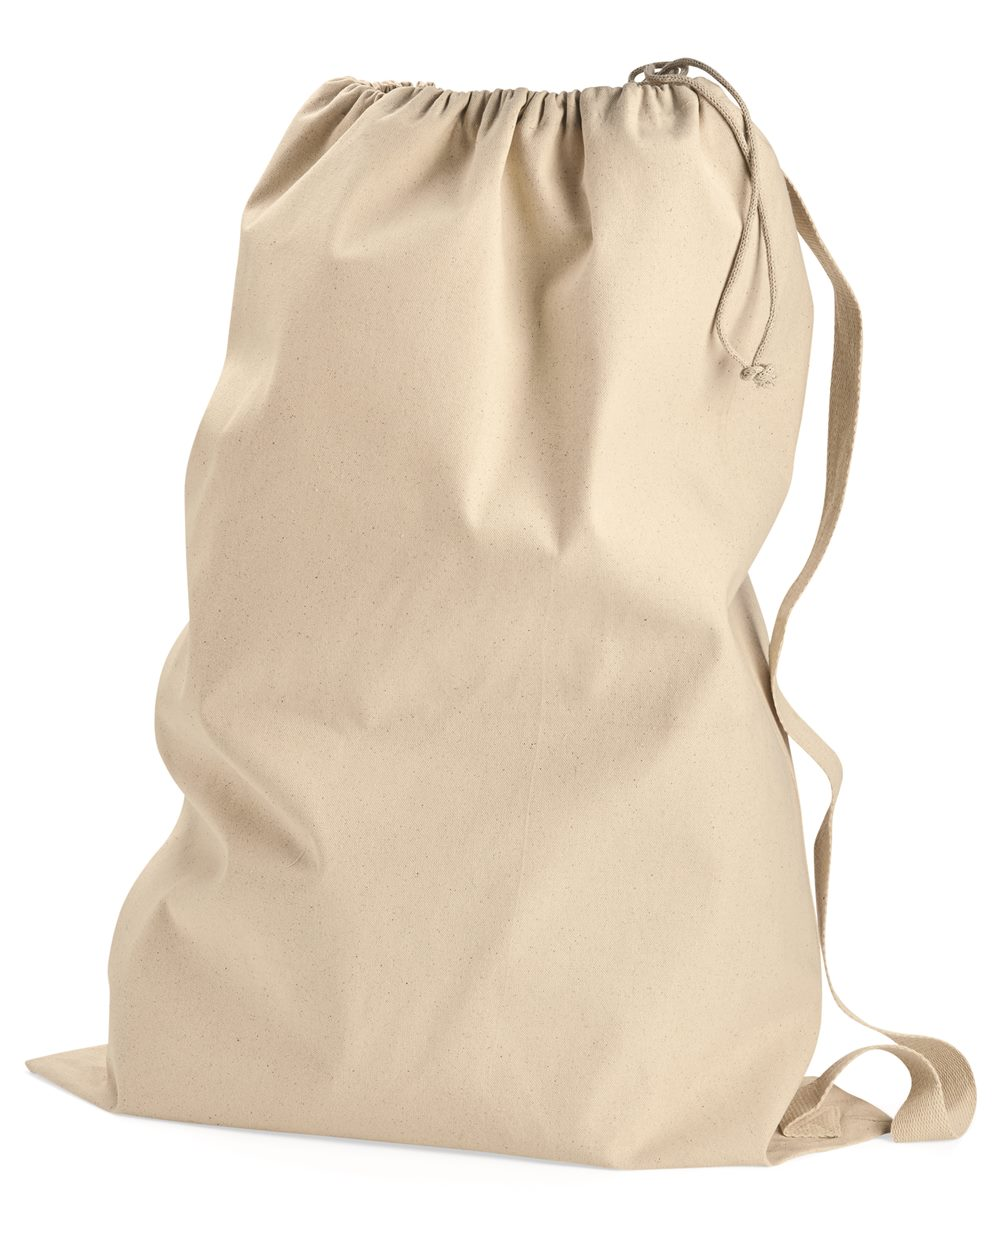 OAD OAD110 - Large Laundry Bag